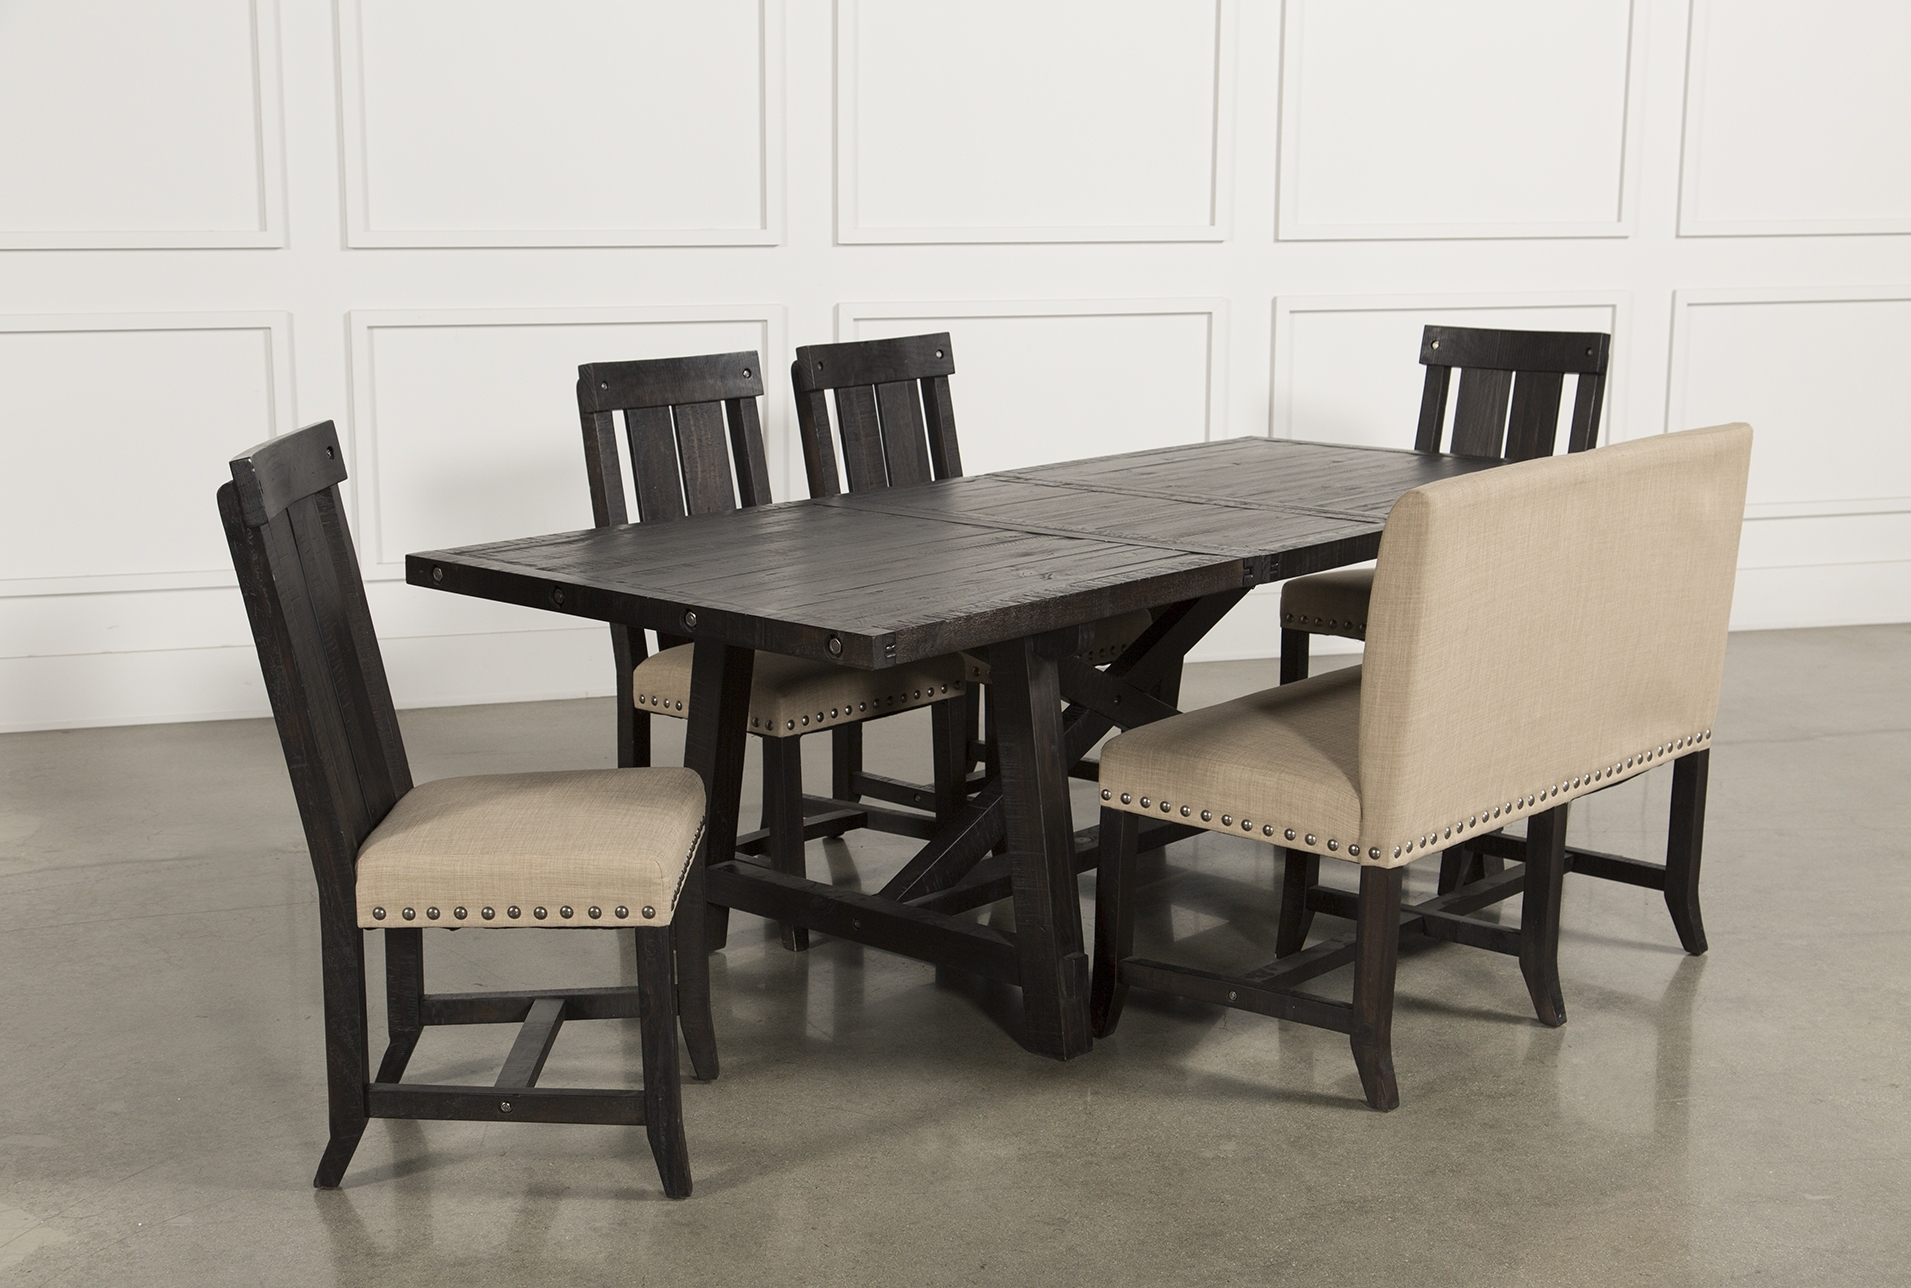 Jaxon 6 Piece Rectangle Dining Set W/bench & Wood Chairs | Products Inside Most Current Partridge 6 Piece Dining Sets (View 7 of 20)